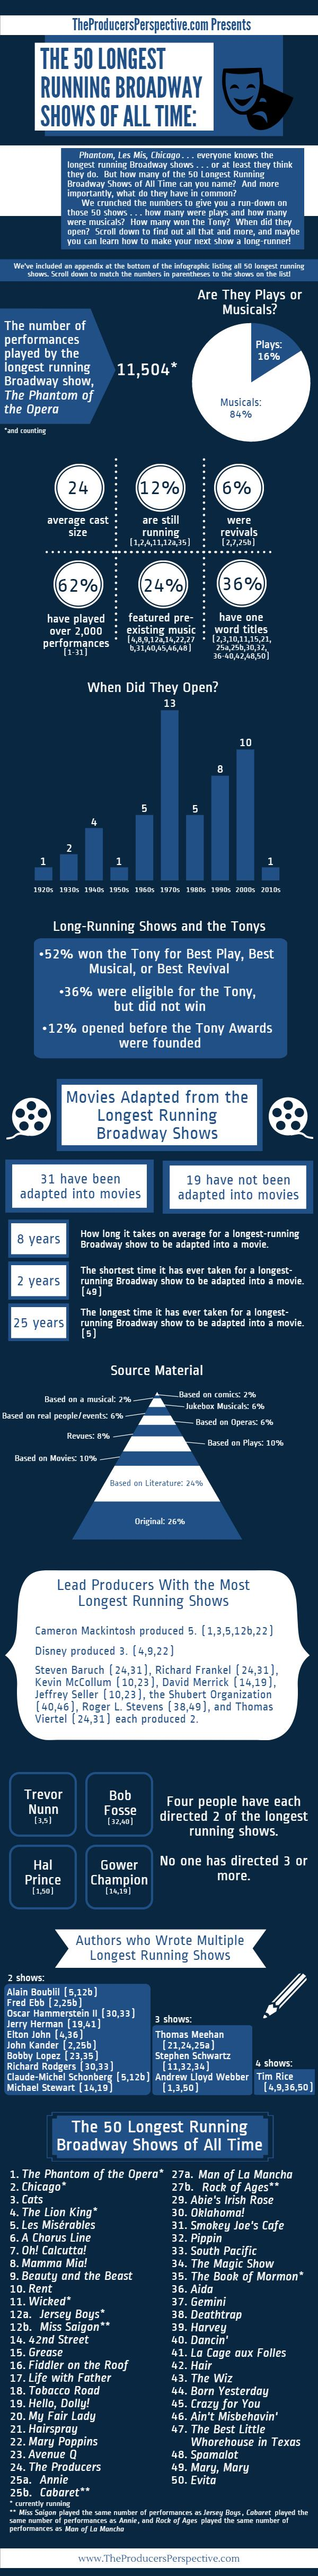 50 Longest Running Broadway Shows (3)